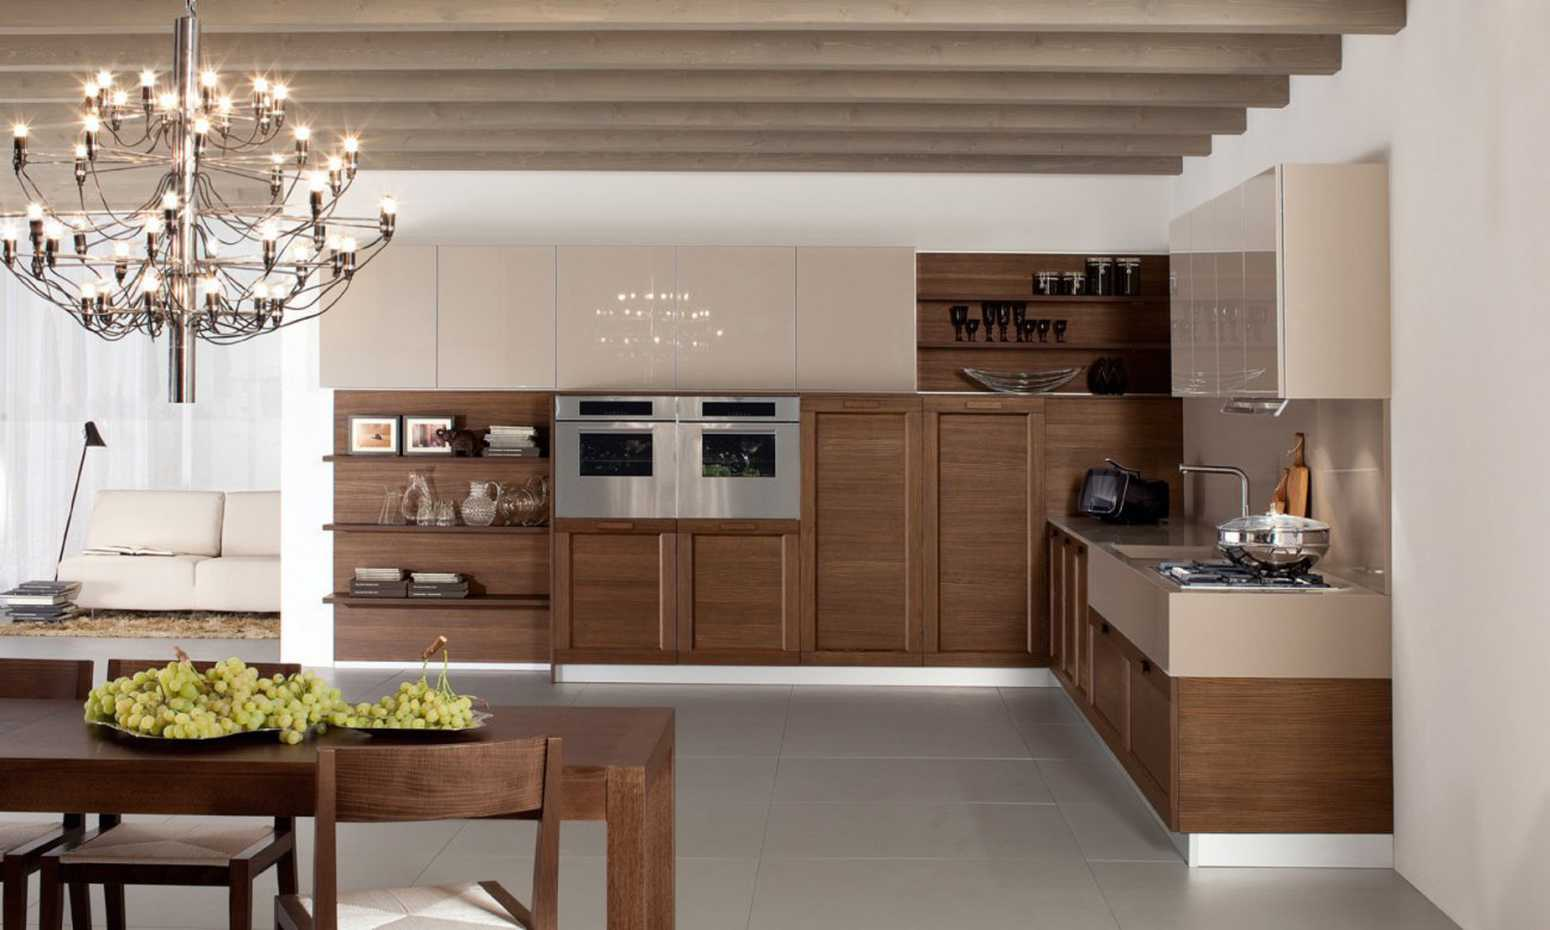 Glamour by Doimo Cucine product image 5